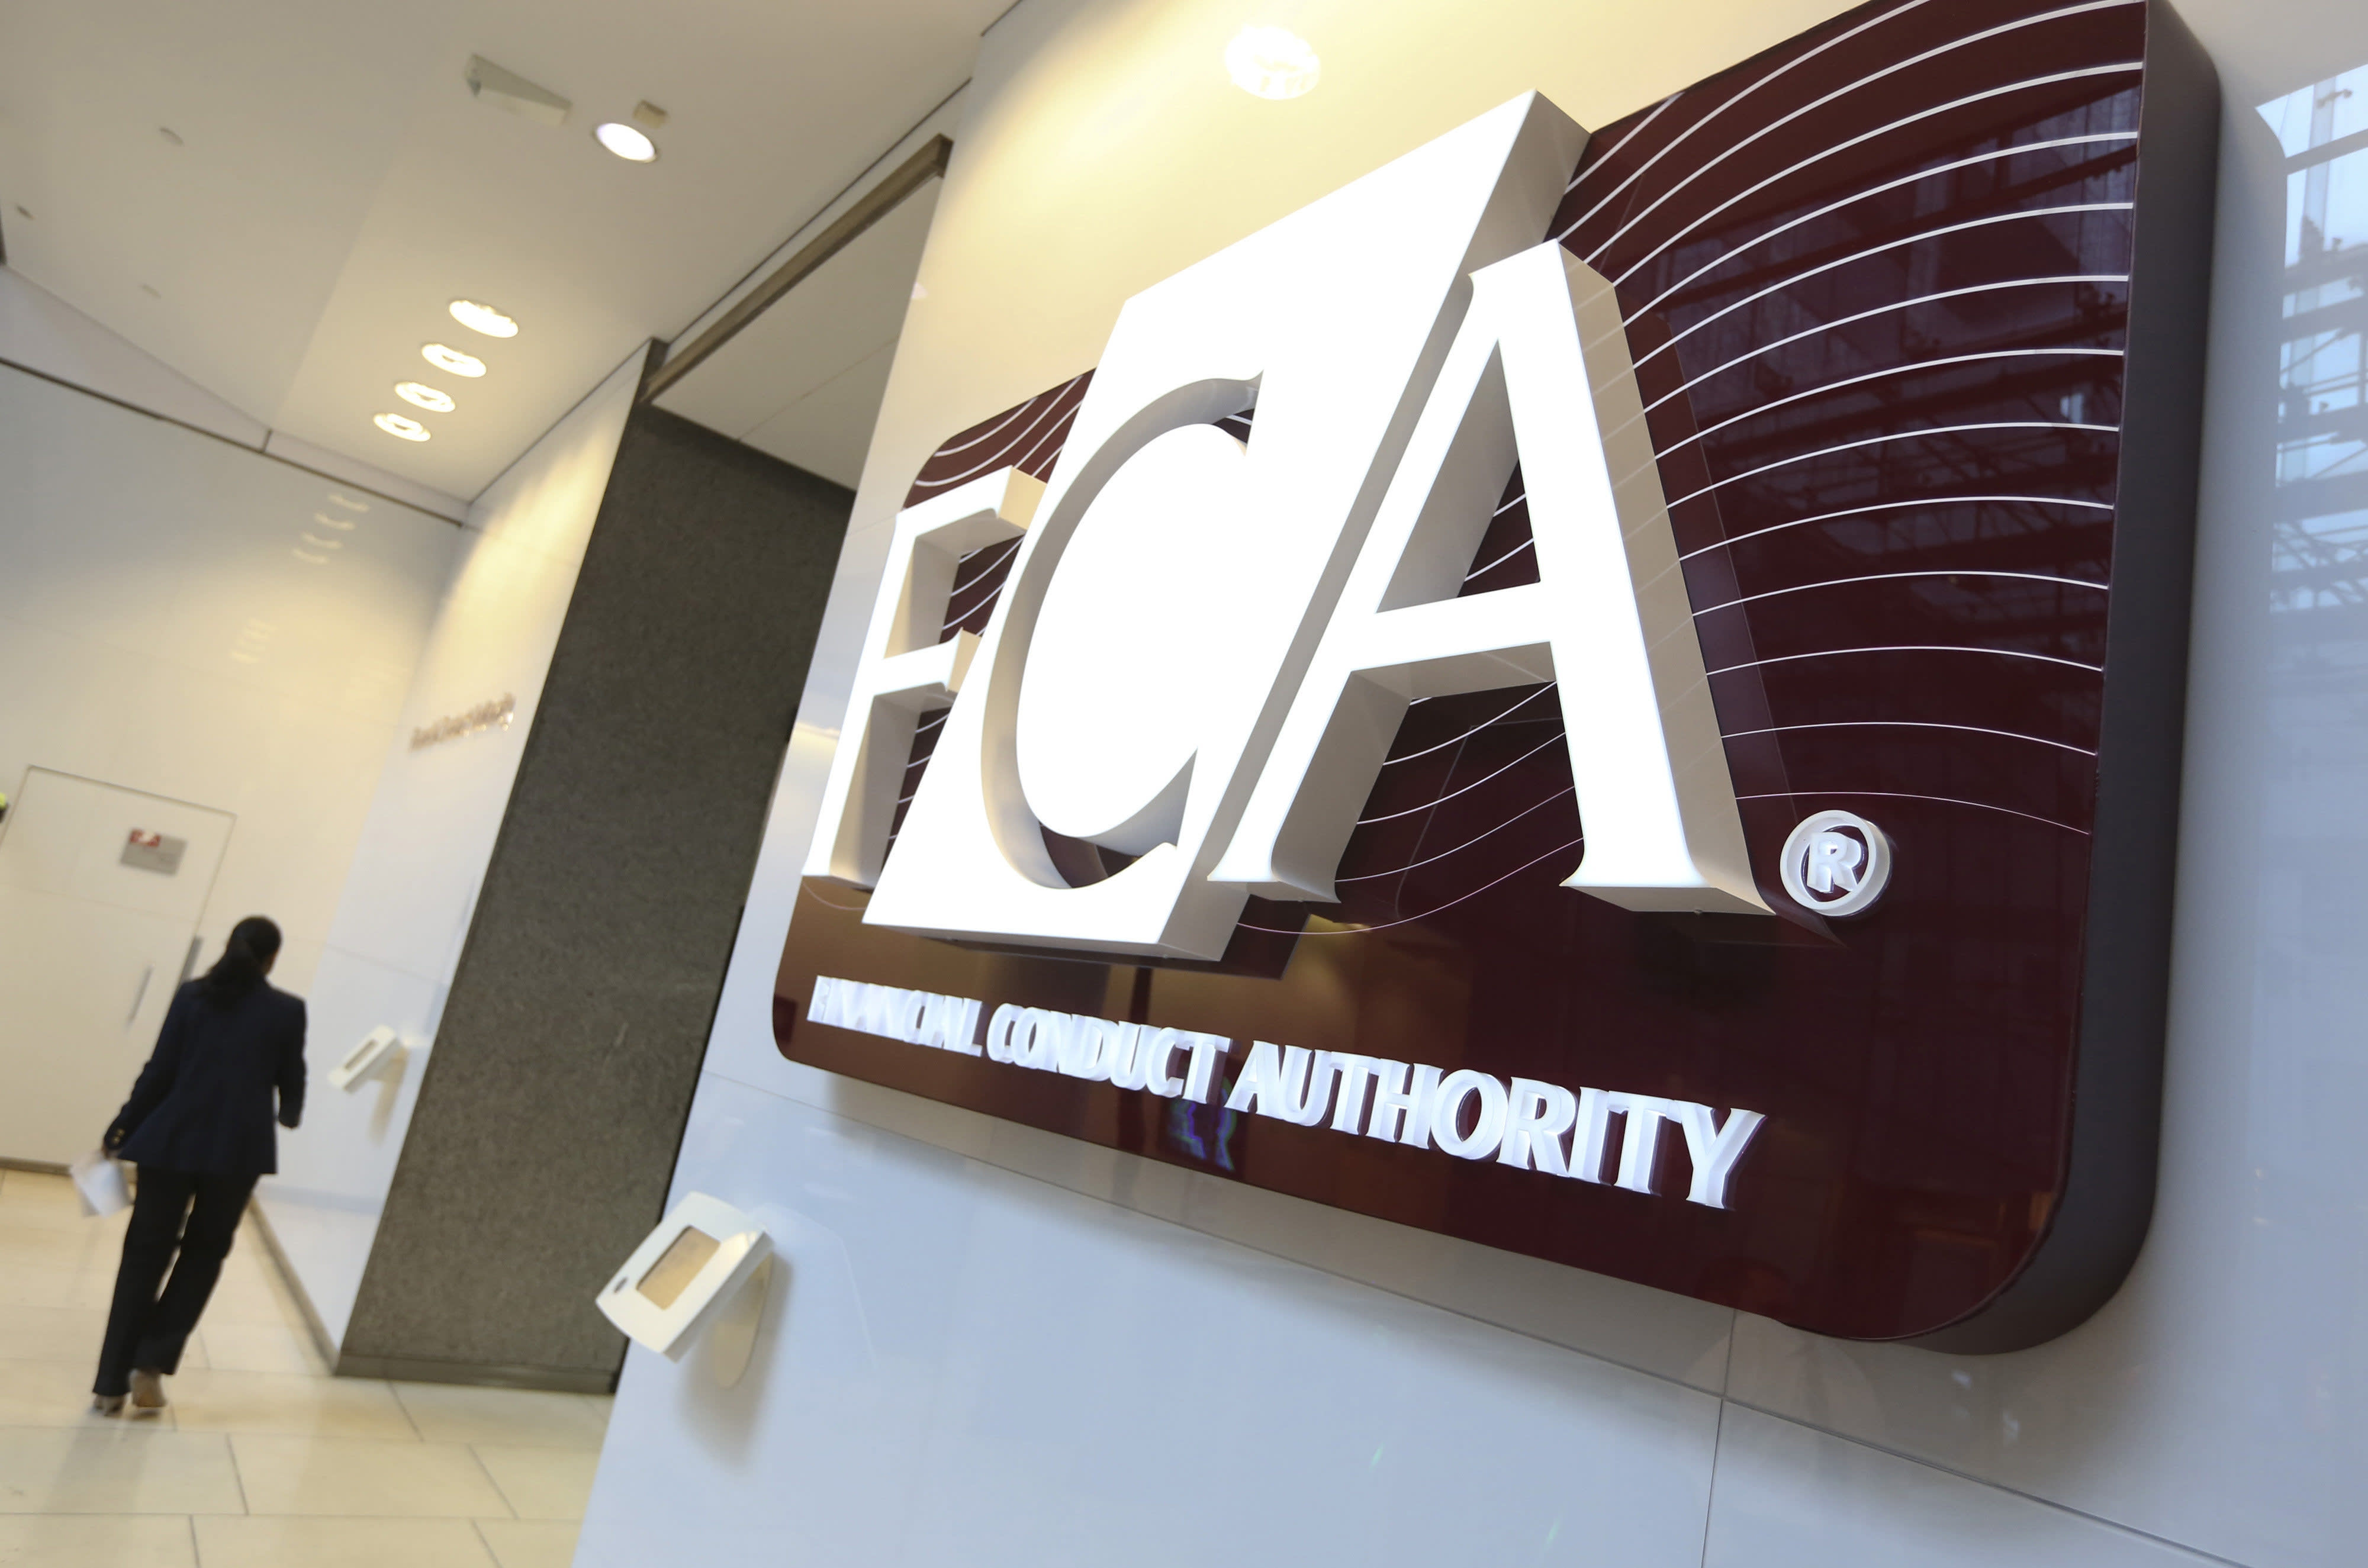 MPs step in over 'troubling concerns' at FCA